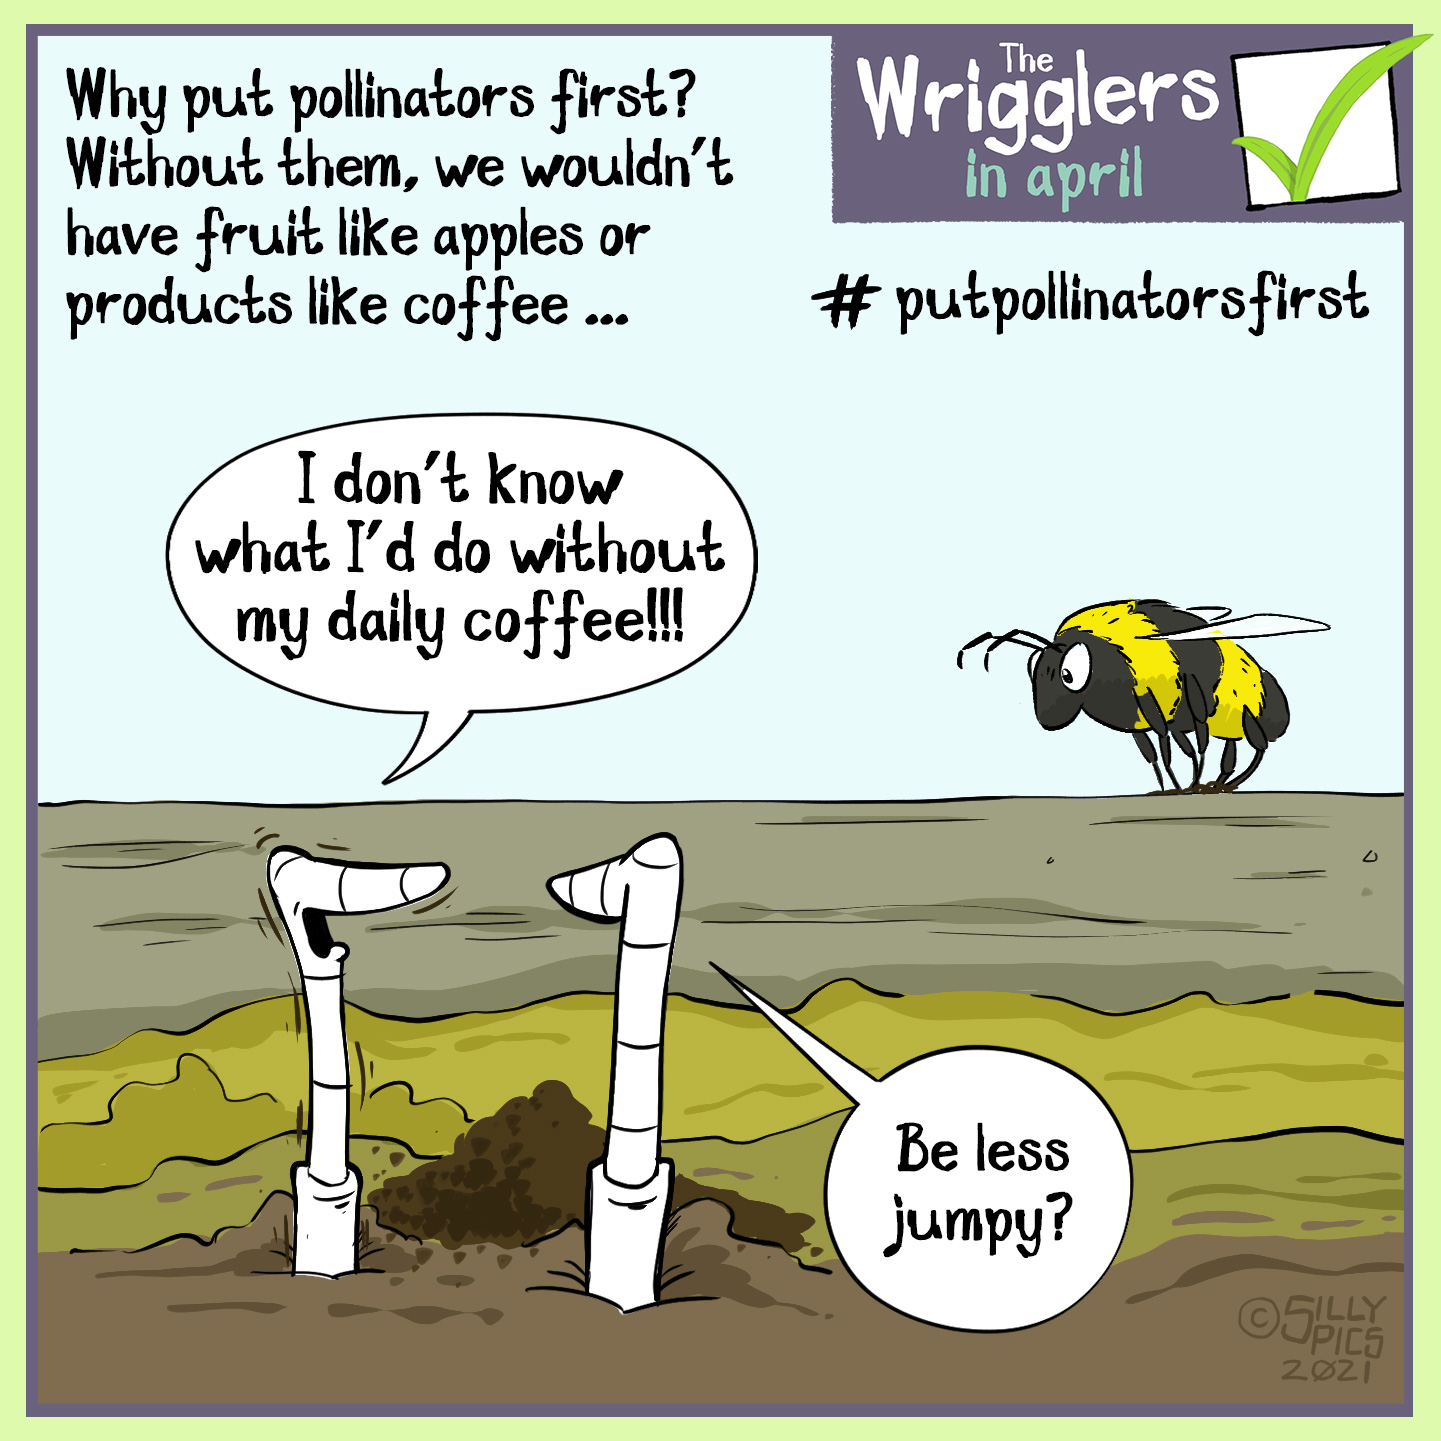 "gardening cartoon from the wrigglers about #putpollinatorsfirst - in this cartoon two worms are discussing the coffee granules in the compost bin. Without pollinators we would have fewer crops, relying on wind pollinated plants like oats, wheat etc... One worm says to the other, "" I don't know what I'd do without my daily coffee?"" The other worm replies, ""be less jumpy?"""